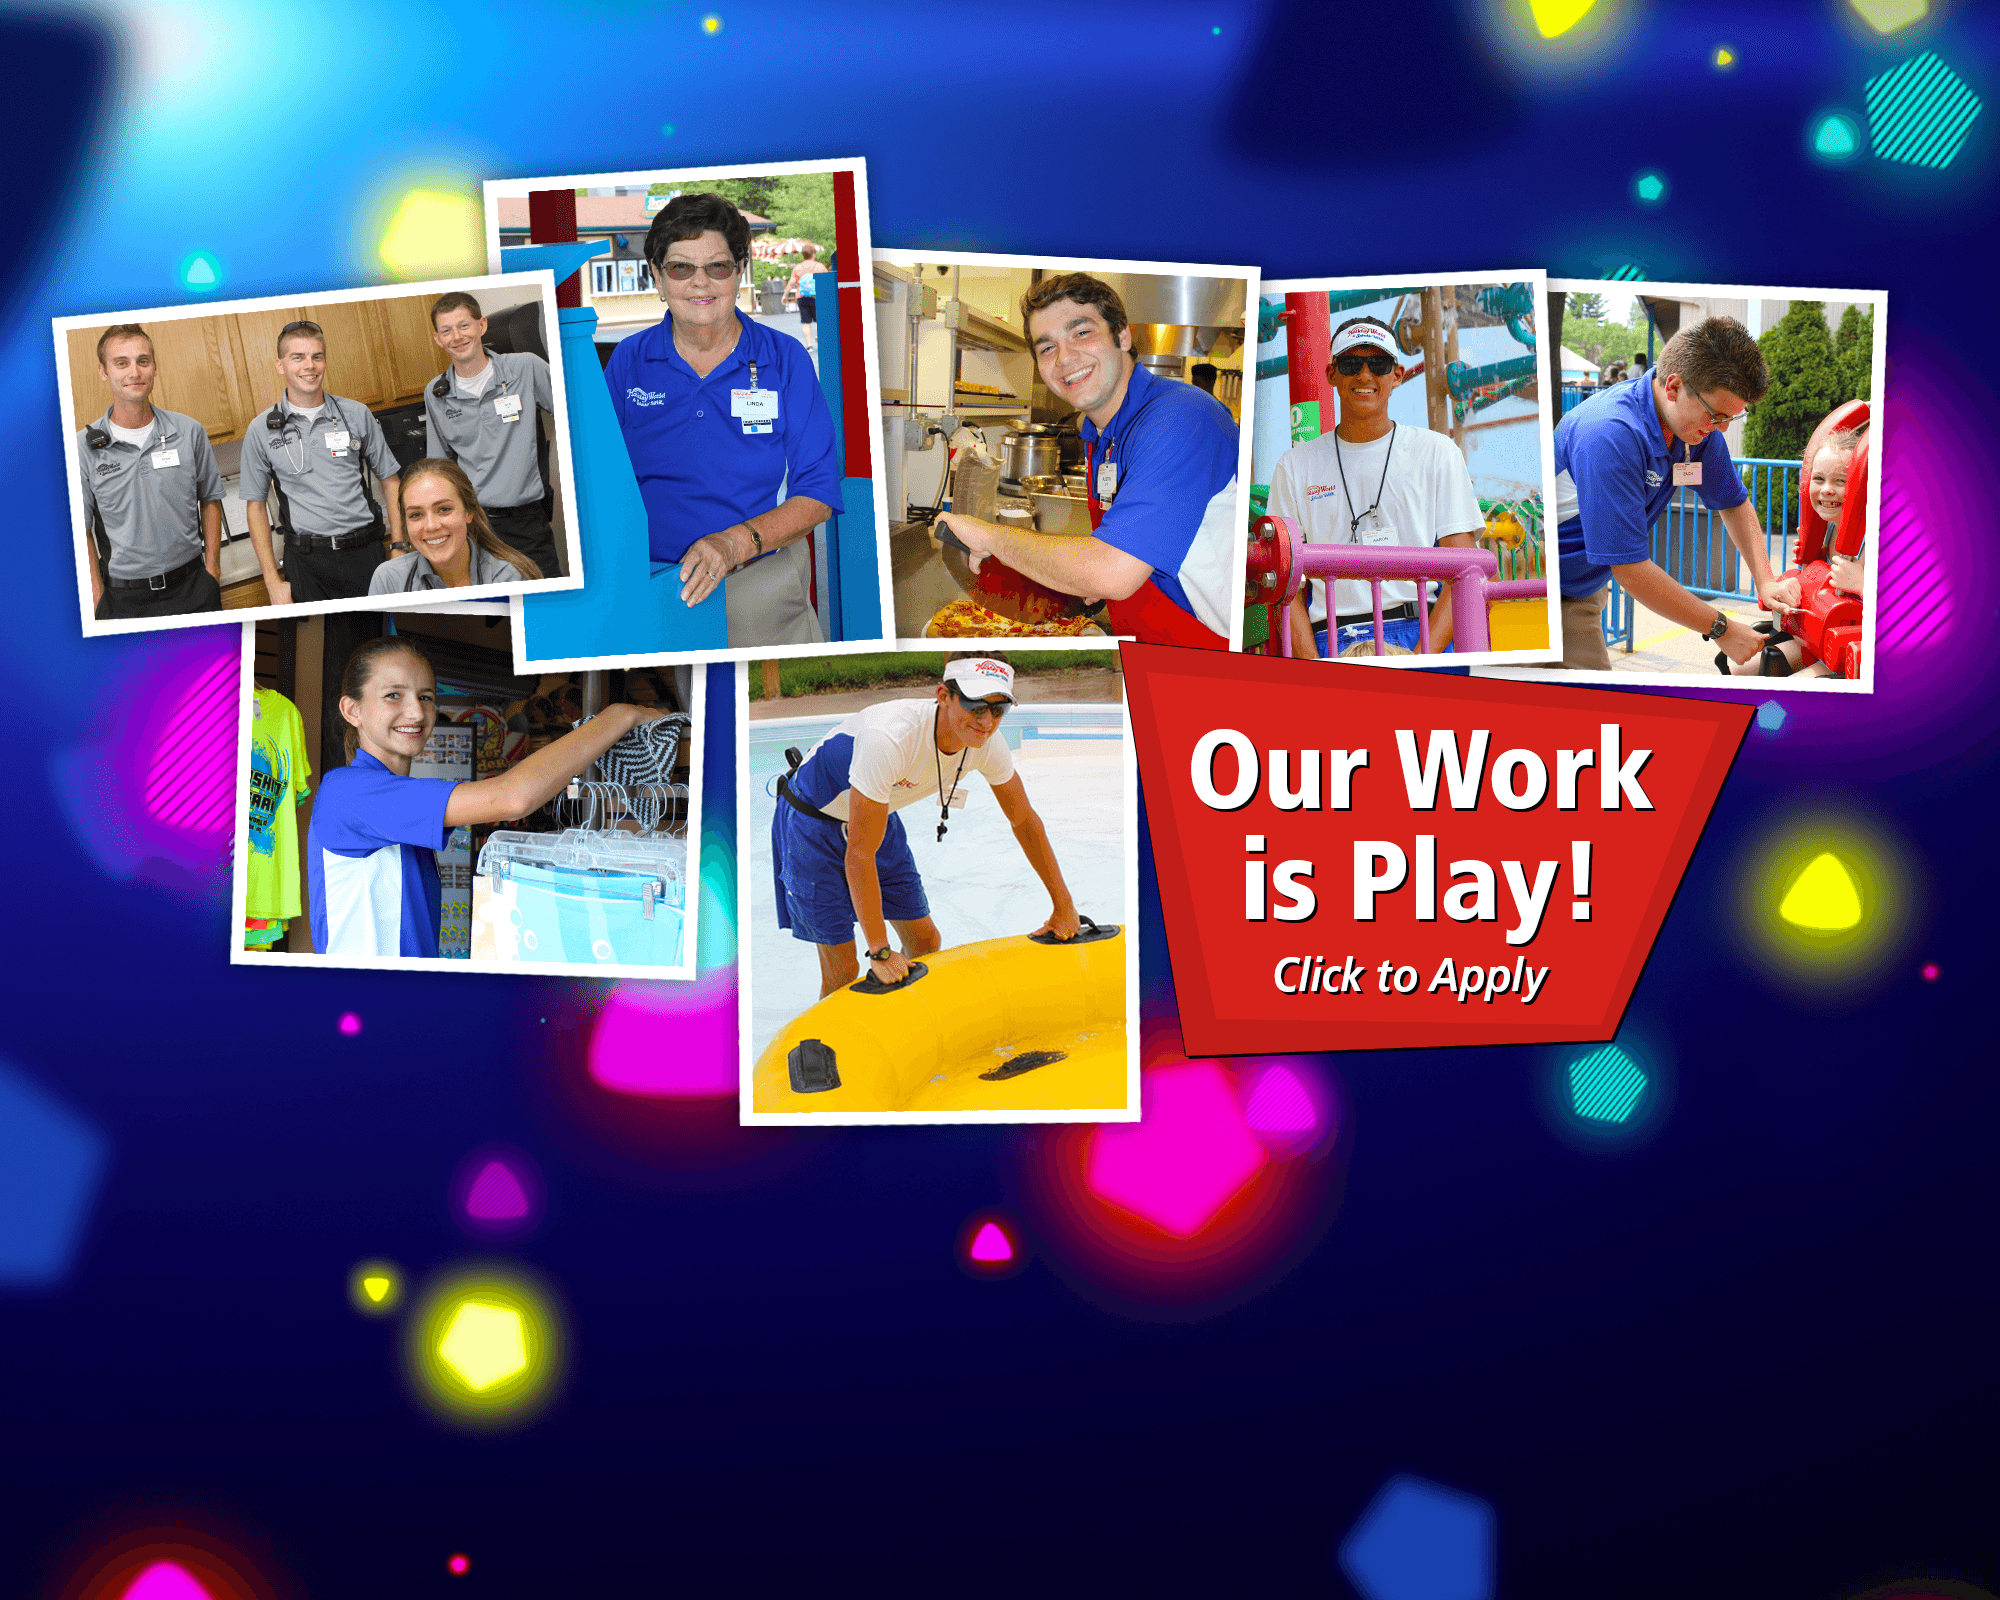 Our Work is Play! Apply Today!